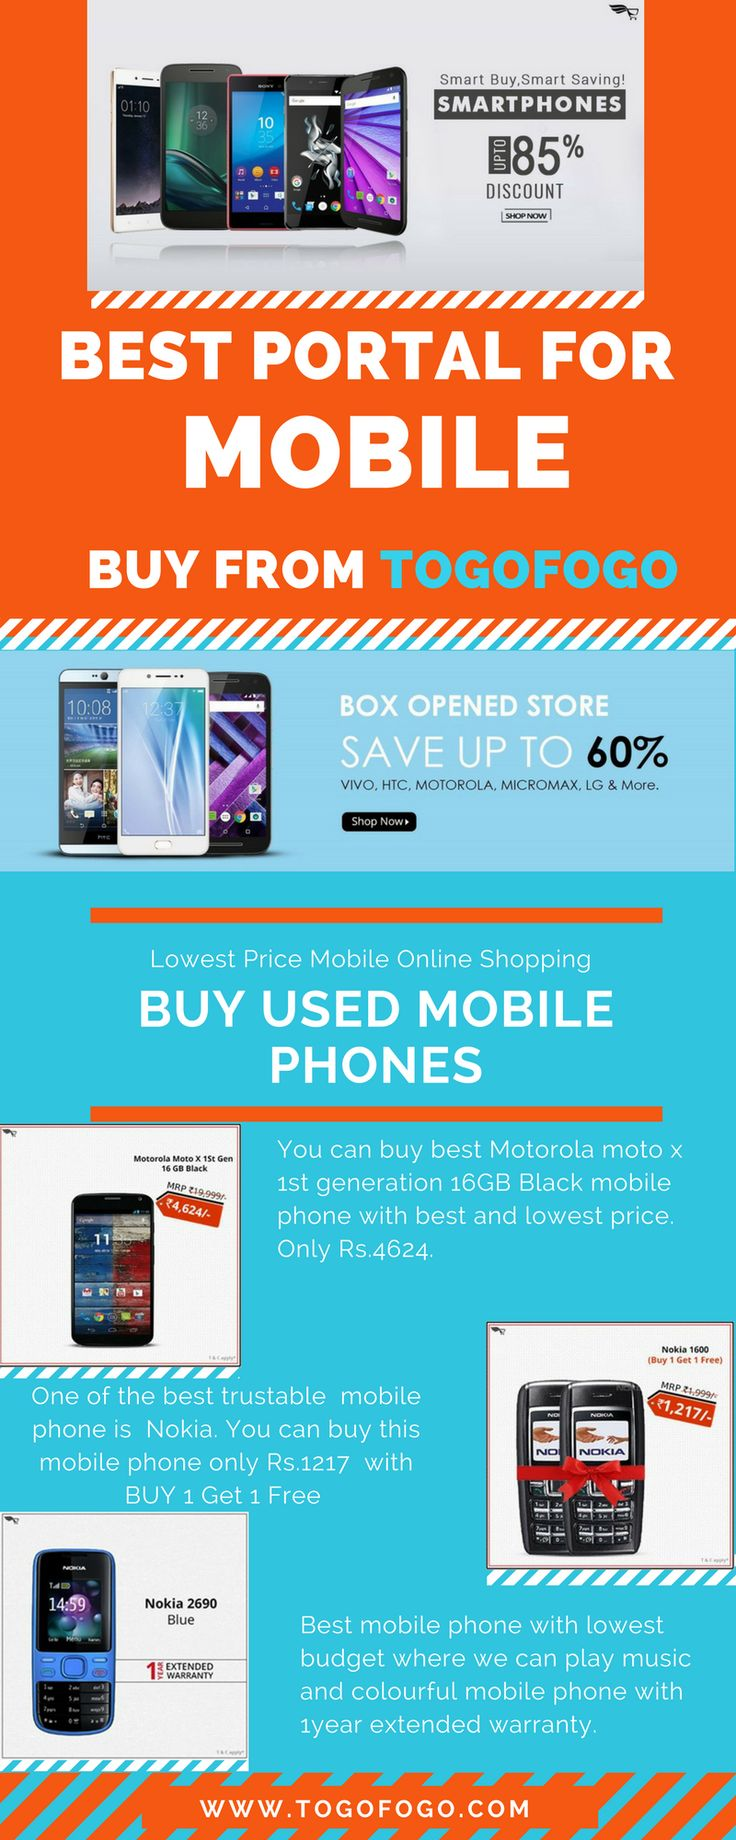 Used Mobile Phones: Buy used mobile, refurbished, box opened and certified pre-owned mobile phones, tablets & laptops online in India with huge discounts, 1 year warranty, free shipping, and COD.